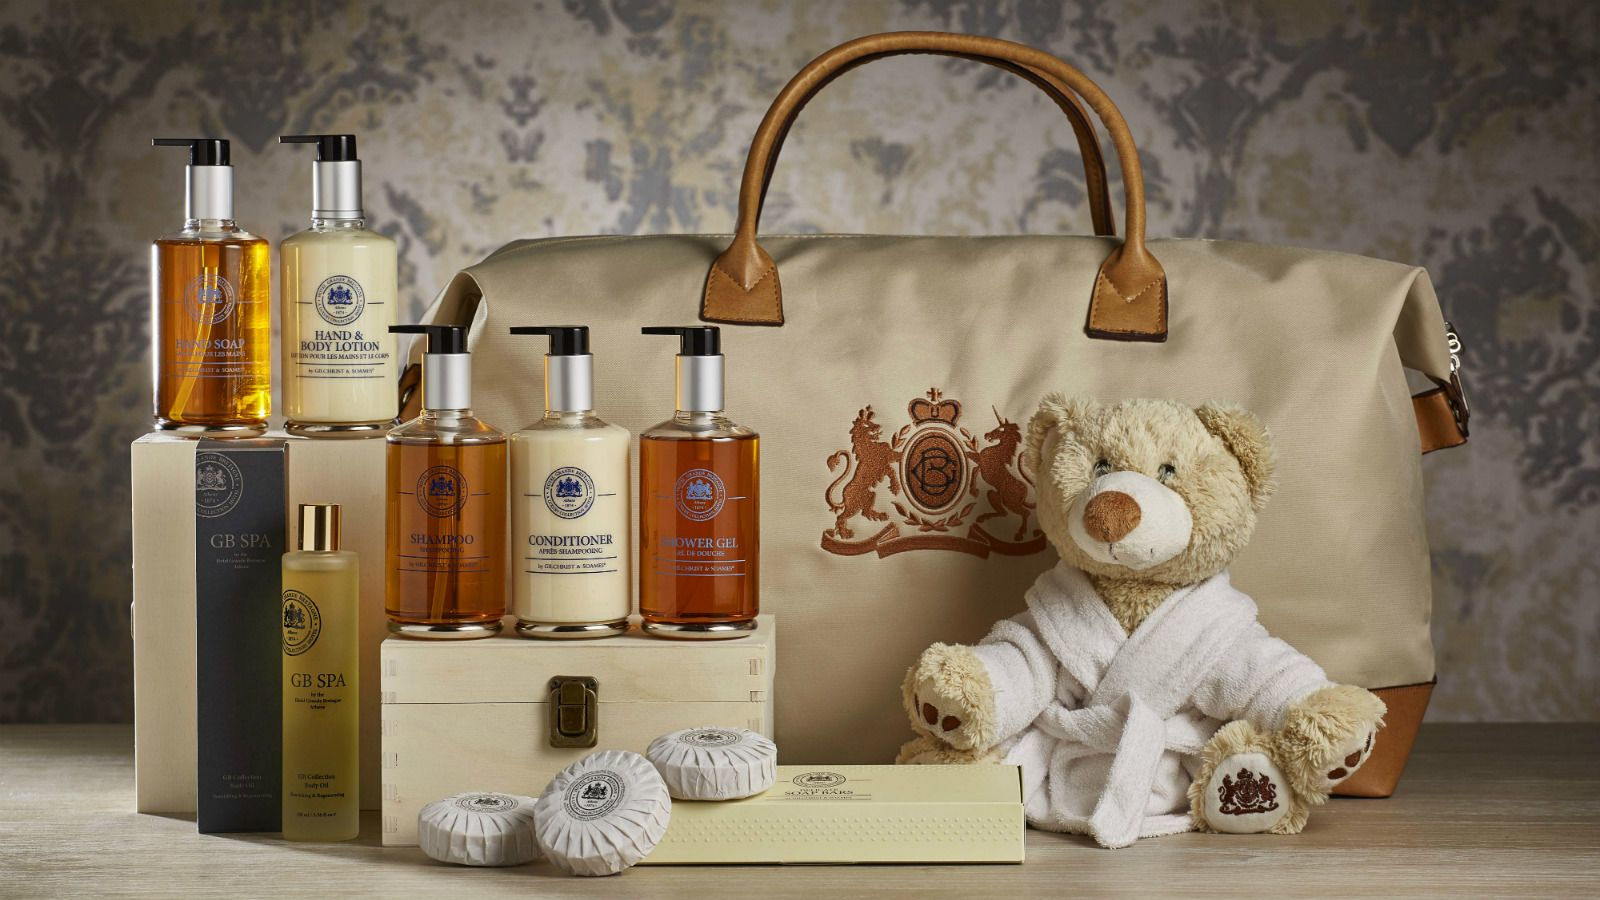 Gift-Hamper-Bath-GB-Corner-Gifts--Flavors-in-Athens-at-Hotel-Grande-Bretagne